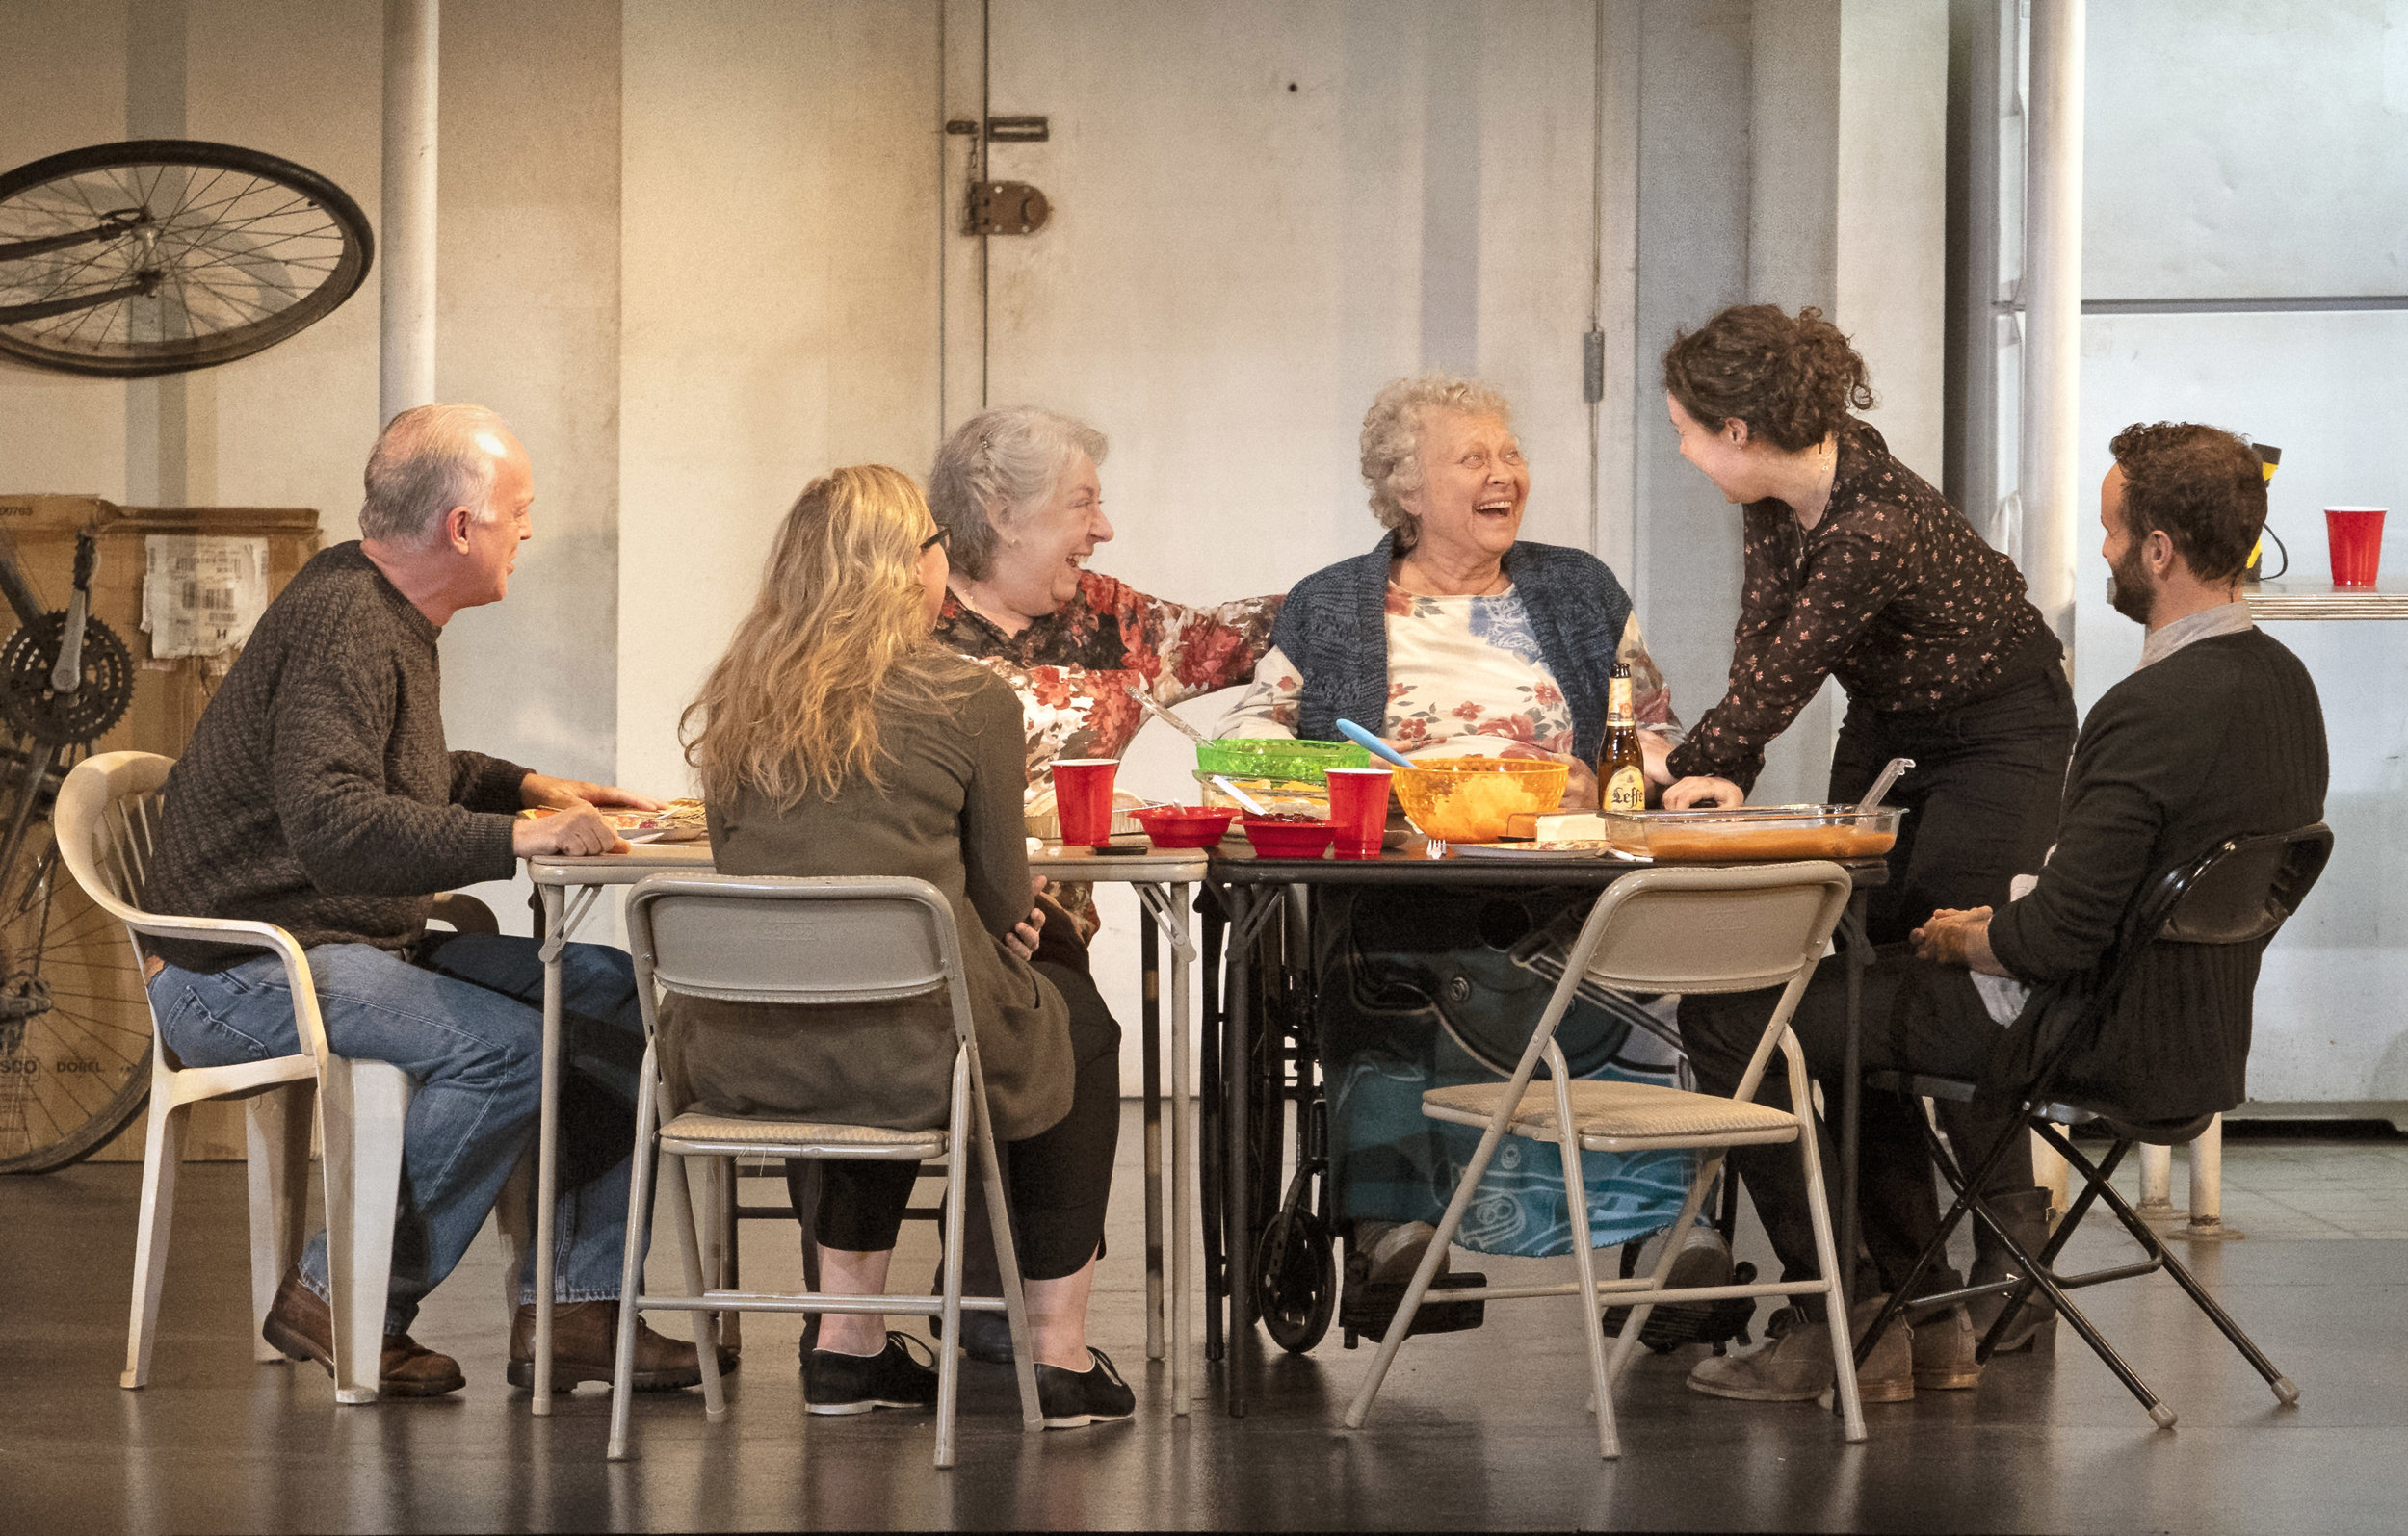 "L-R: Reed Birney, Cassie Beck, Jayne Houdyshell, Lauren Klein, Sarah Steele and Nick Mills in ""The Humans"" at the Ahmanson Theatre presented by Center Theatre Group. Written by Stephen Karam and directed by Joe Mantello, ""The Humans"" will run through July 29, 2018. Photo by Lawrence K. Ho."